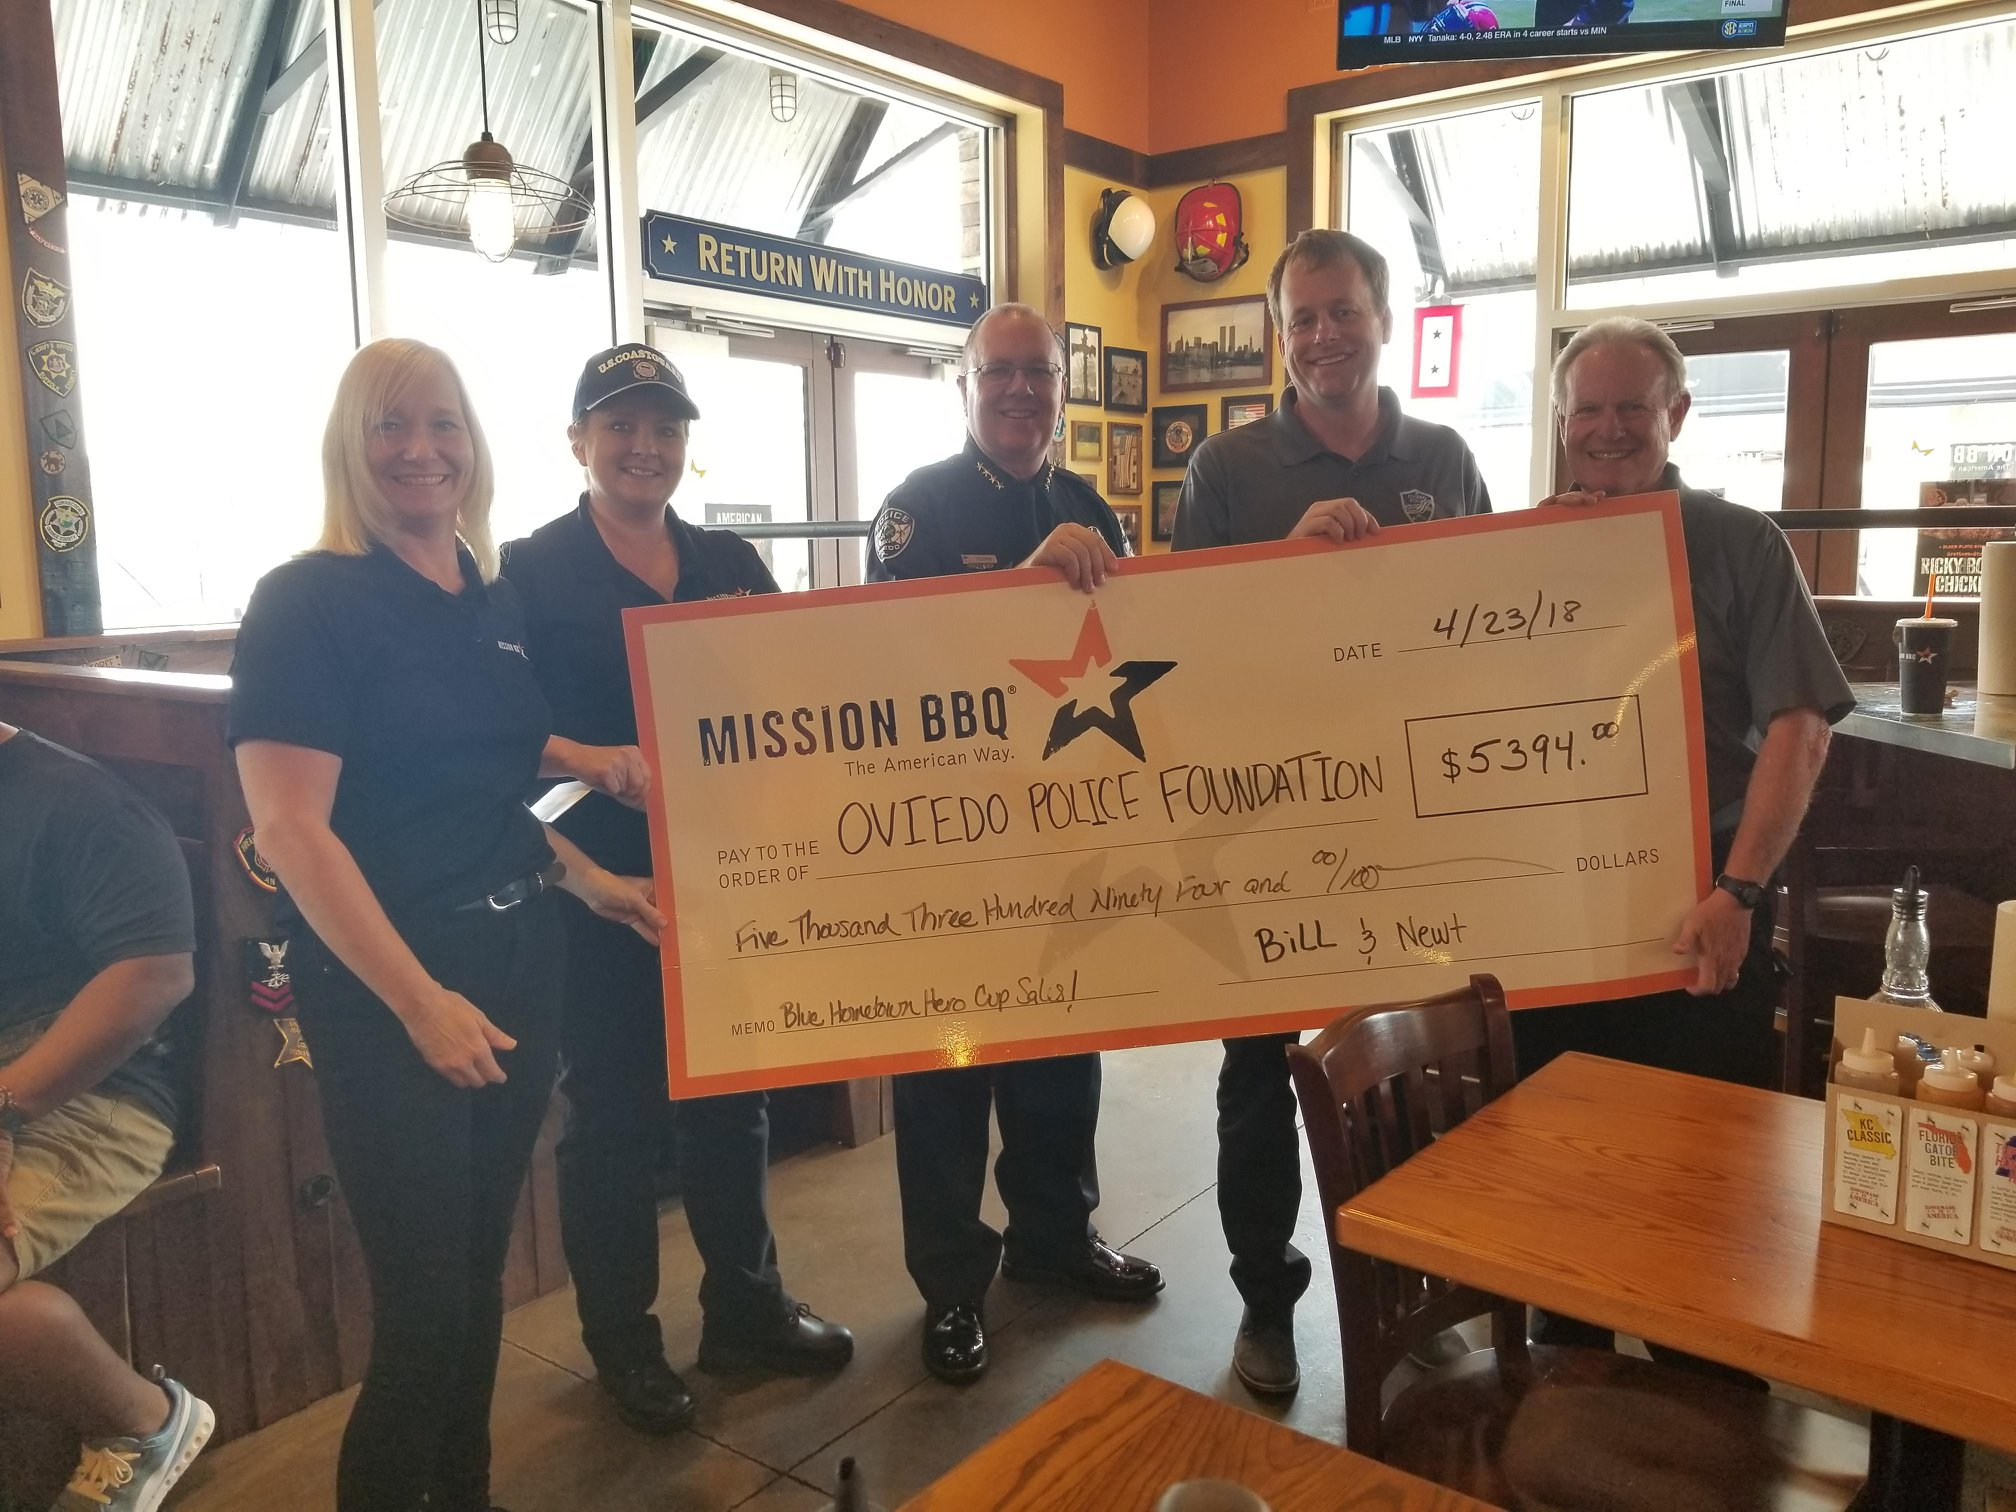 Beers & Gordon donating to the Oviedo Police Foundation